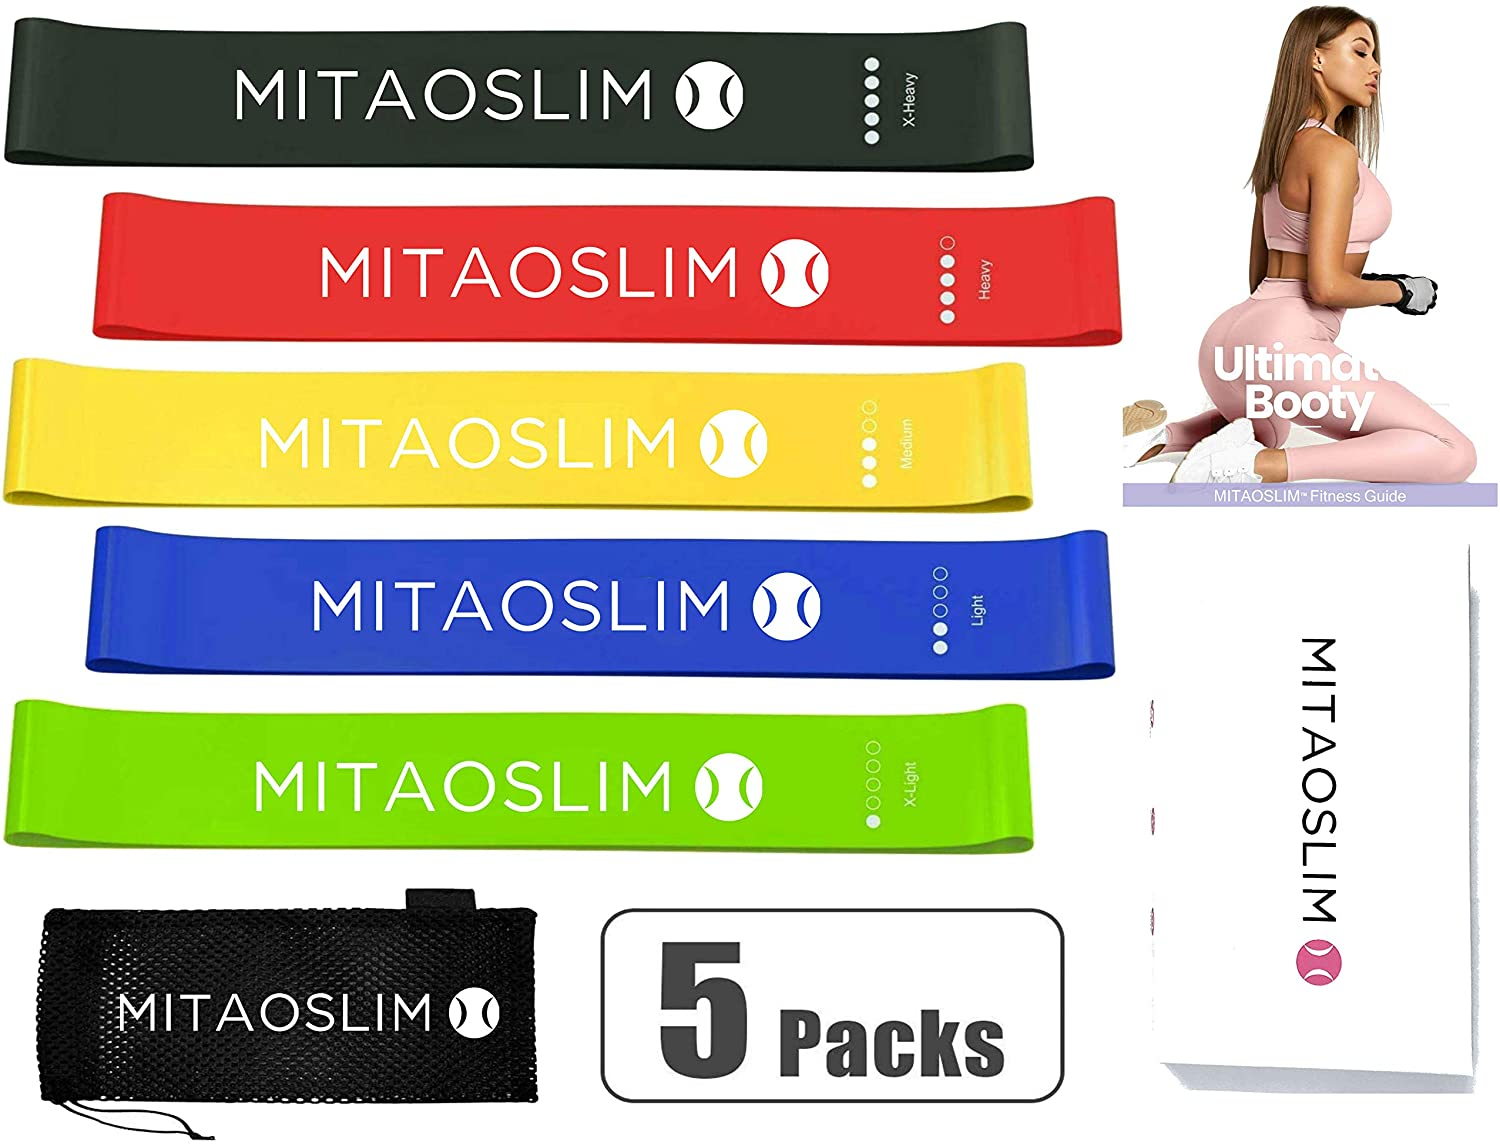 MITAOSLIM Resistance Loop Exercise Bands with 6 Weeks Training Program Fitness Guide Book for Home Fitness Workout Bands Set of 5